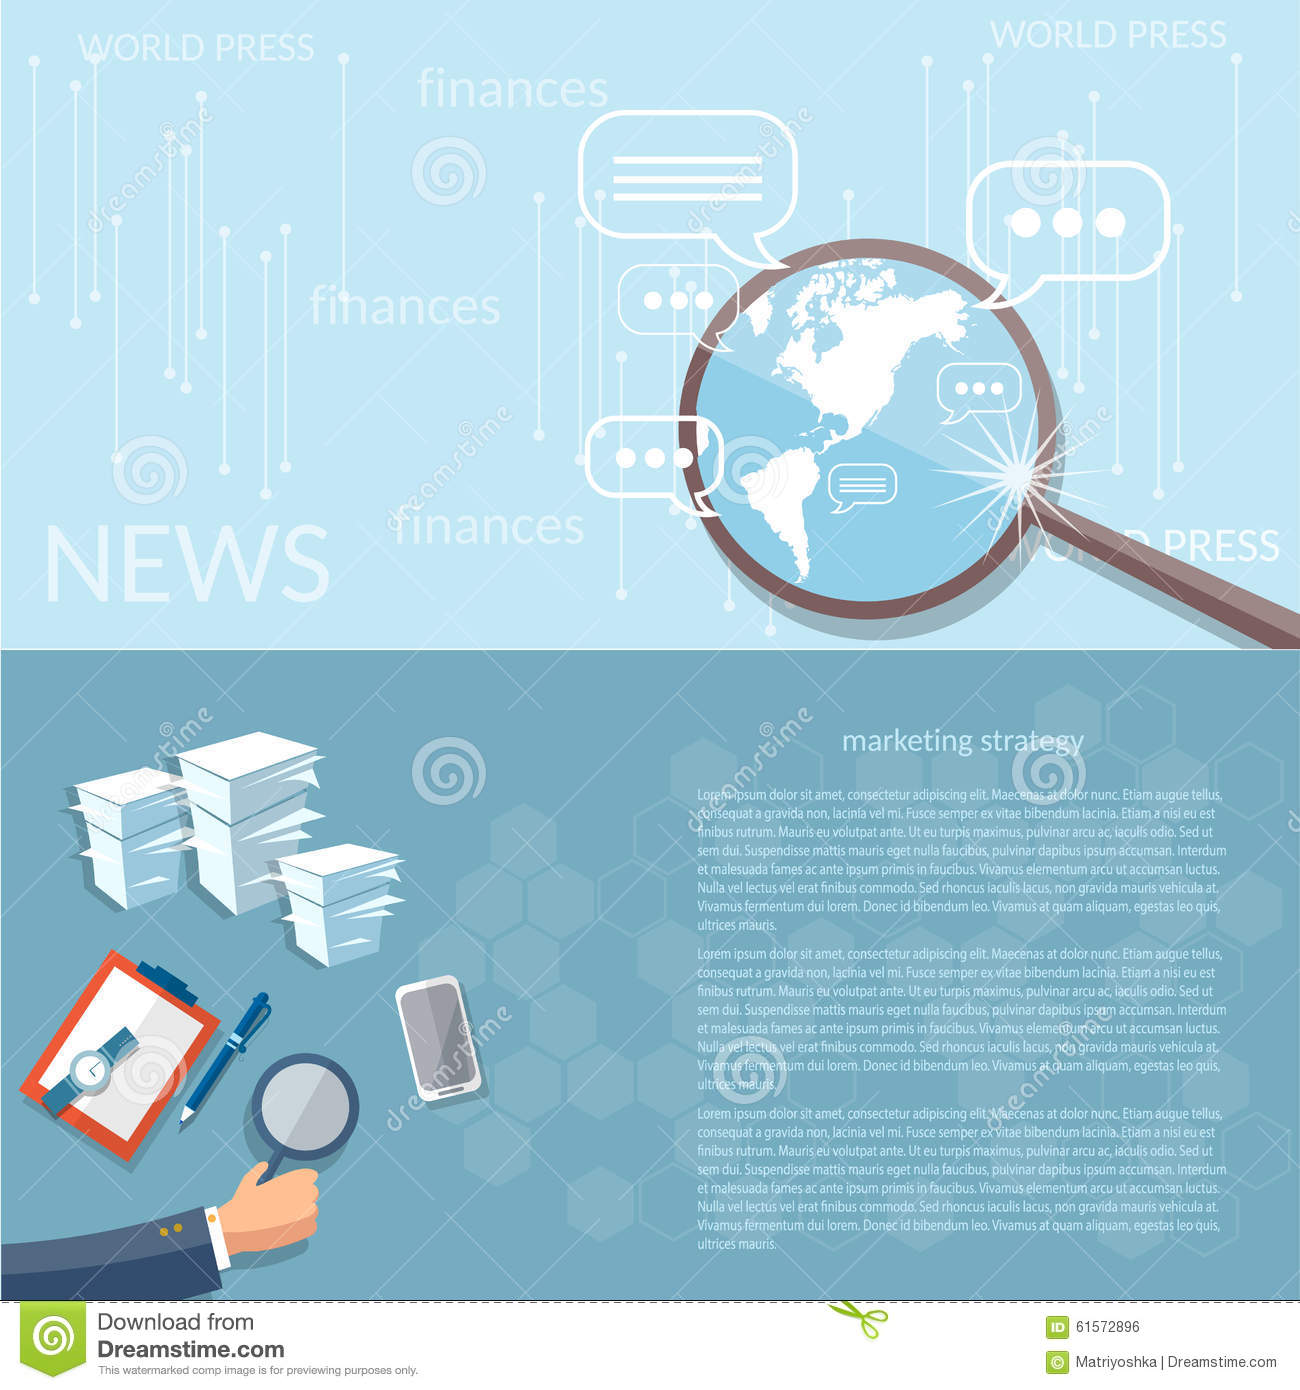 News Finance Concept Marketing Strategy Business Analyst